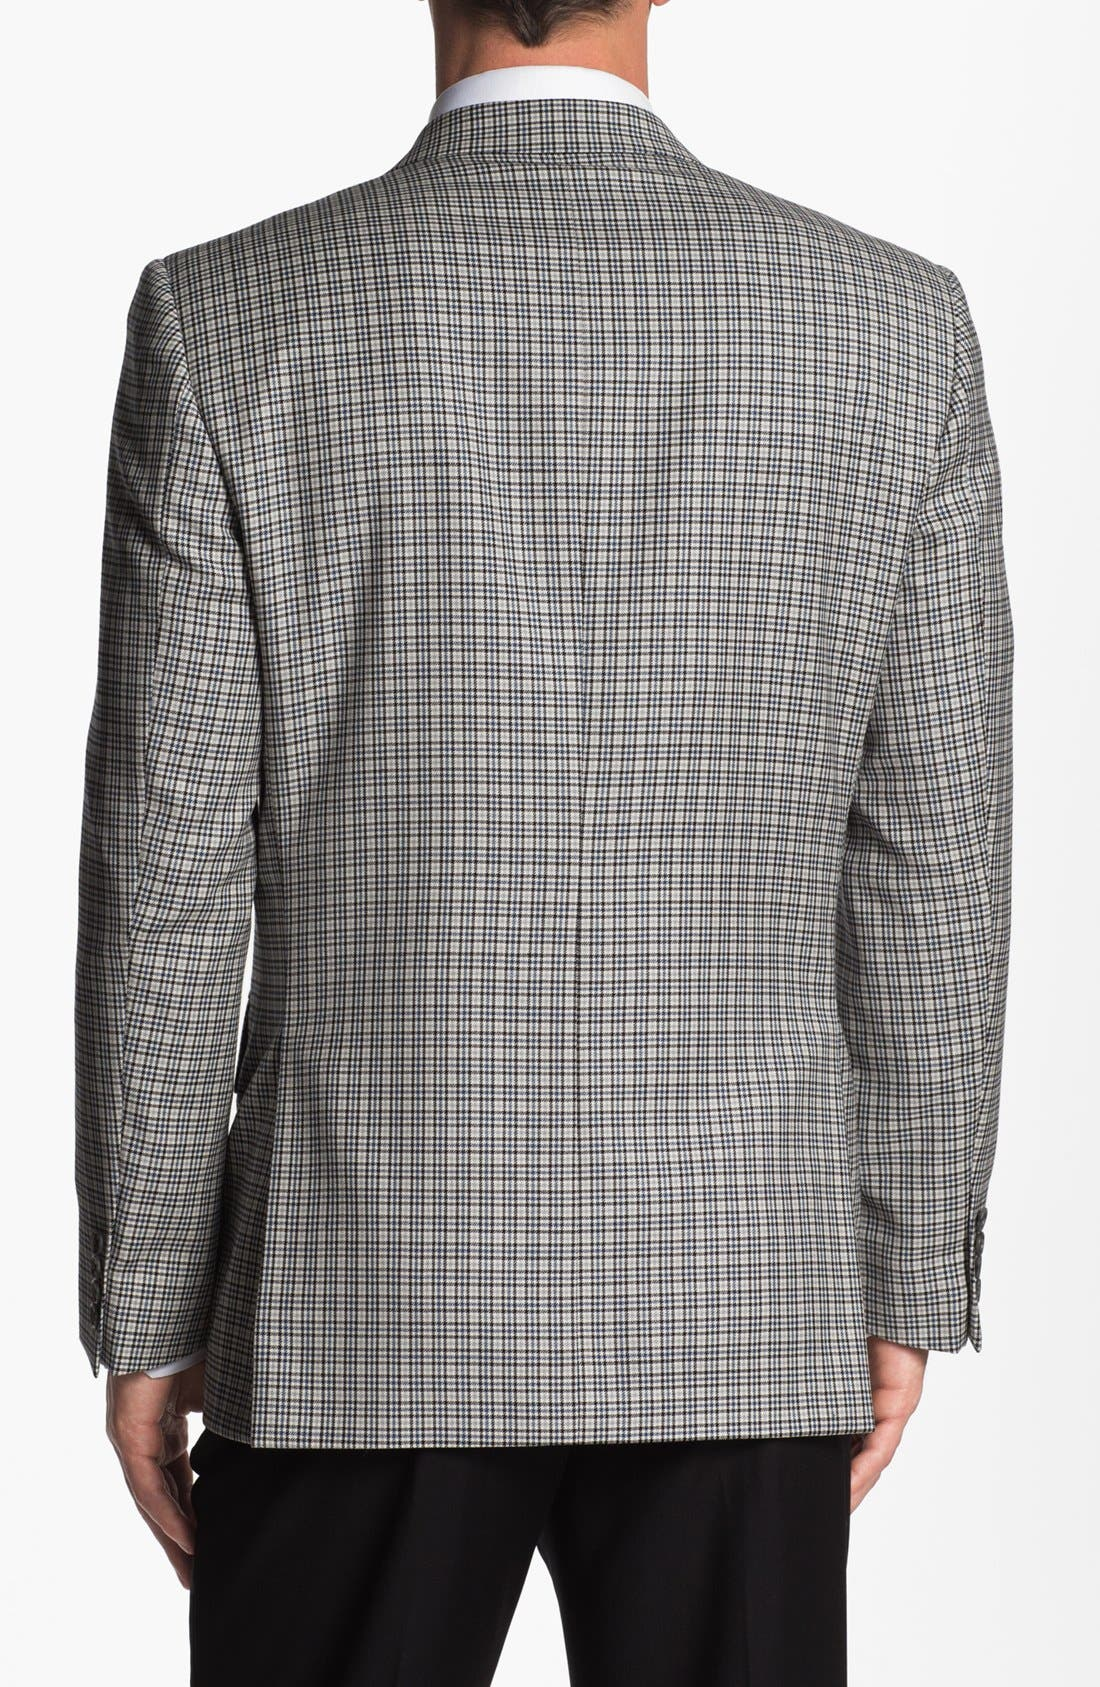 JOSEPH ABBOUD, 'Signature Silver' Check Wool & Silk Sportcoat, Alternate thumbnail 3, color, 400